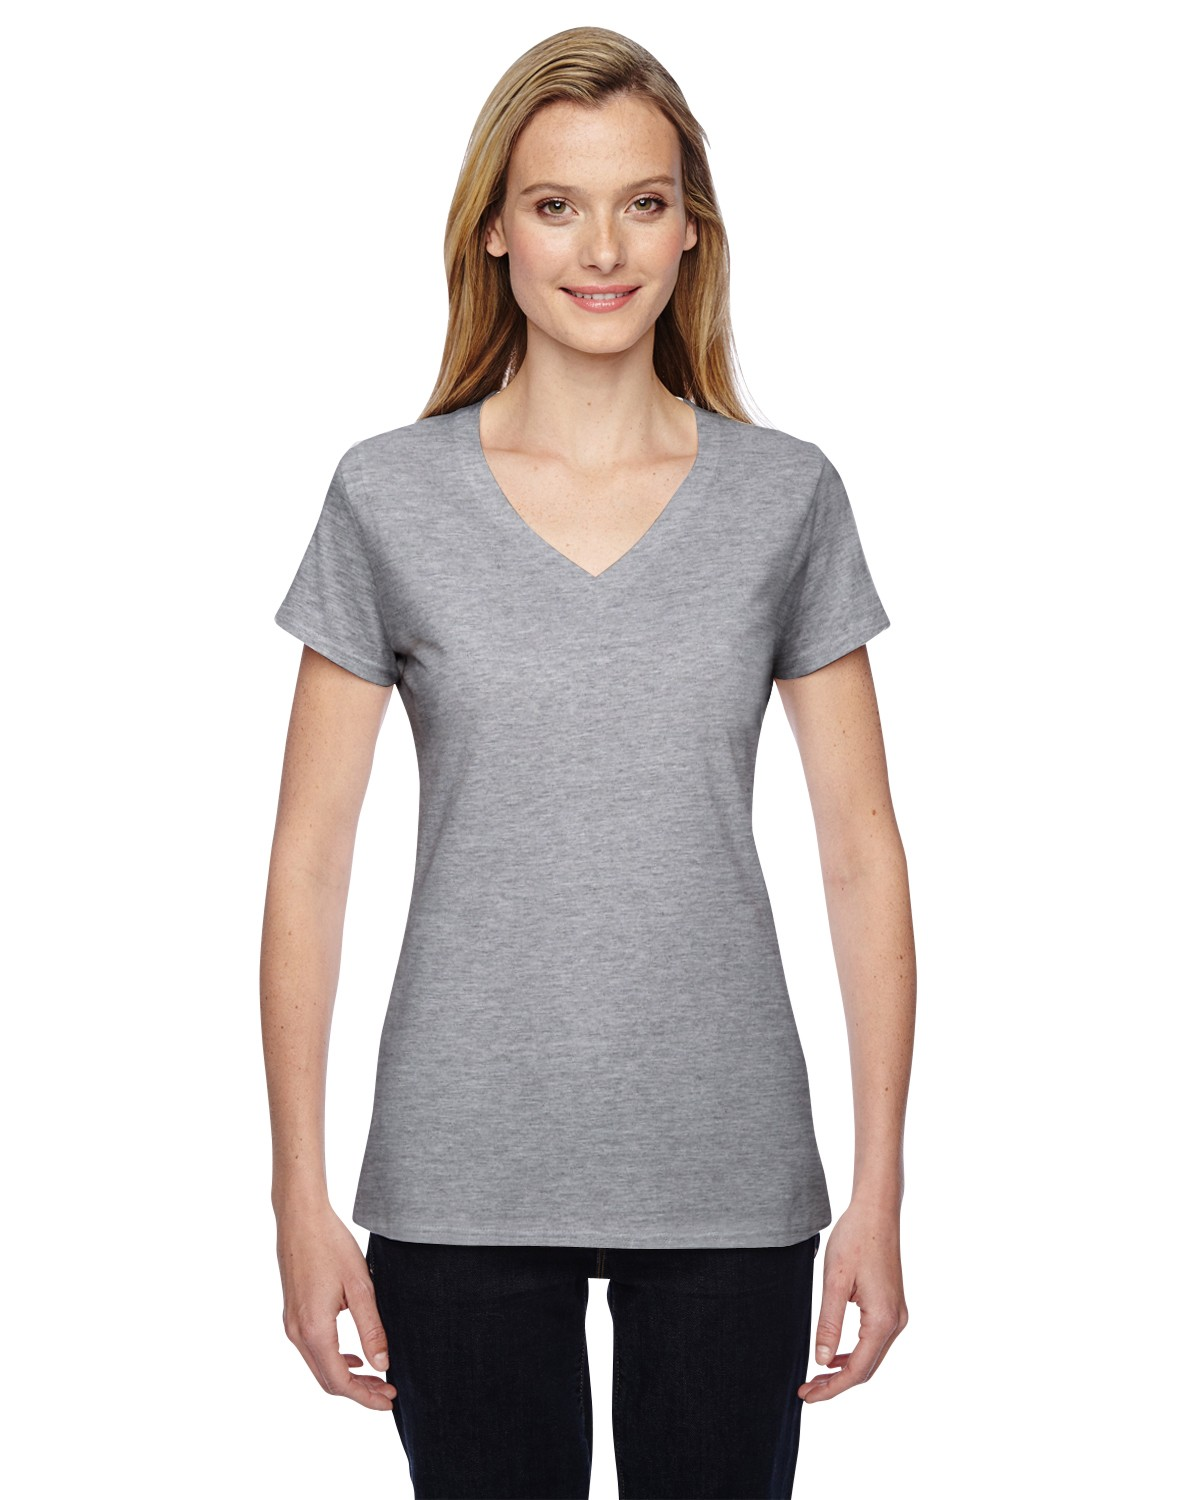 SFJVR Fruit of the Loom ATHLETIC HEATHER